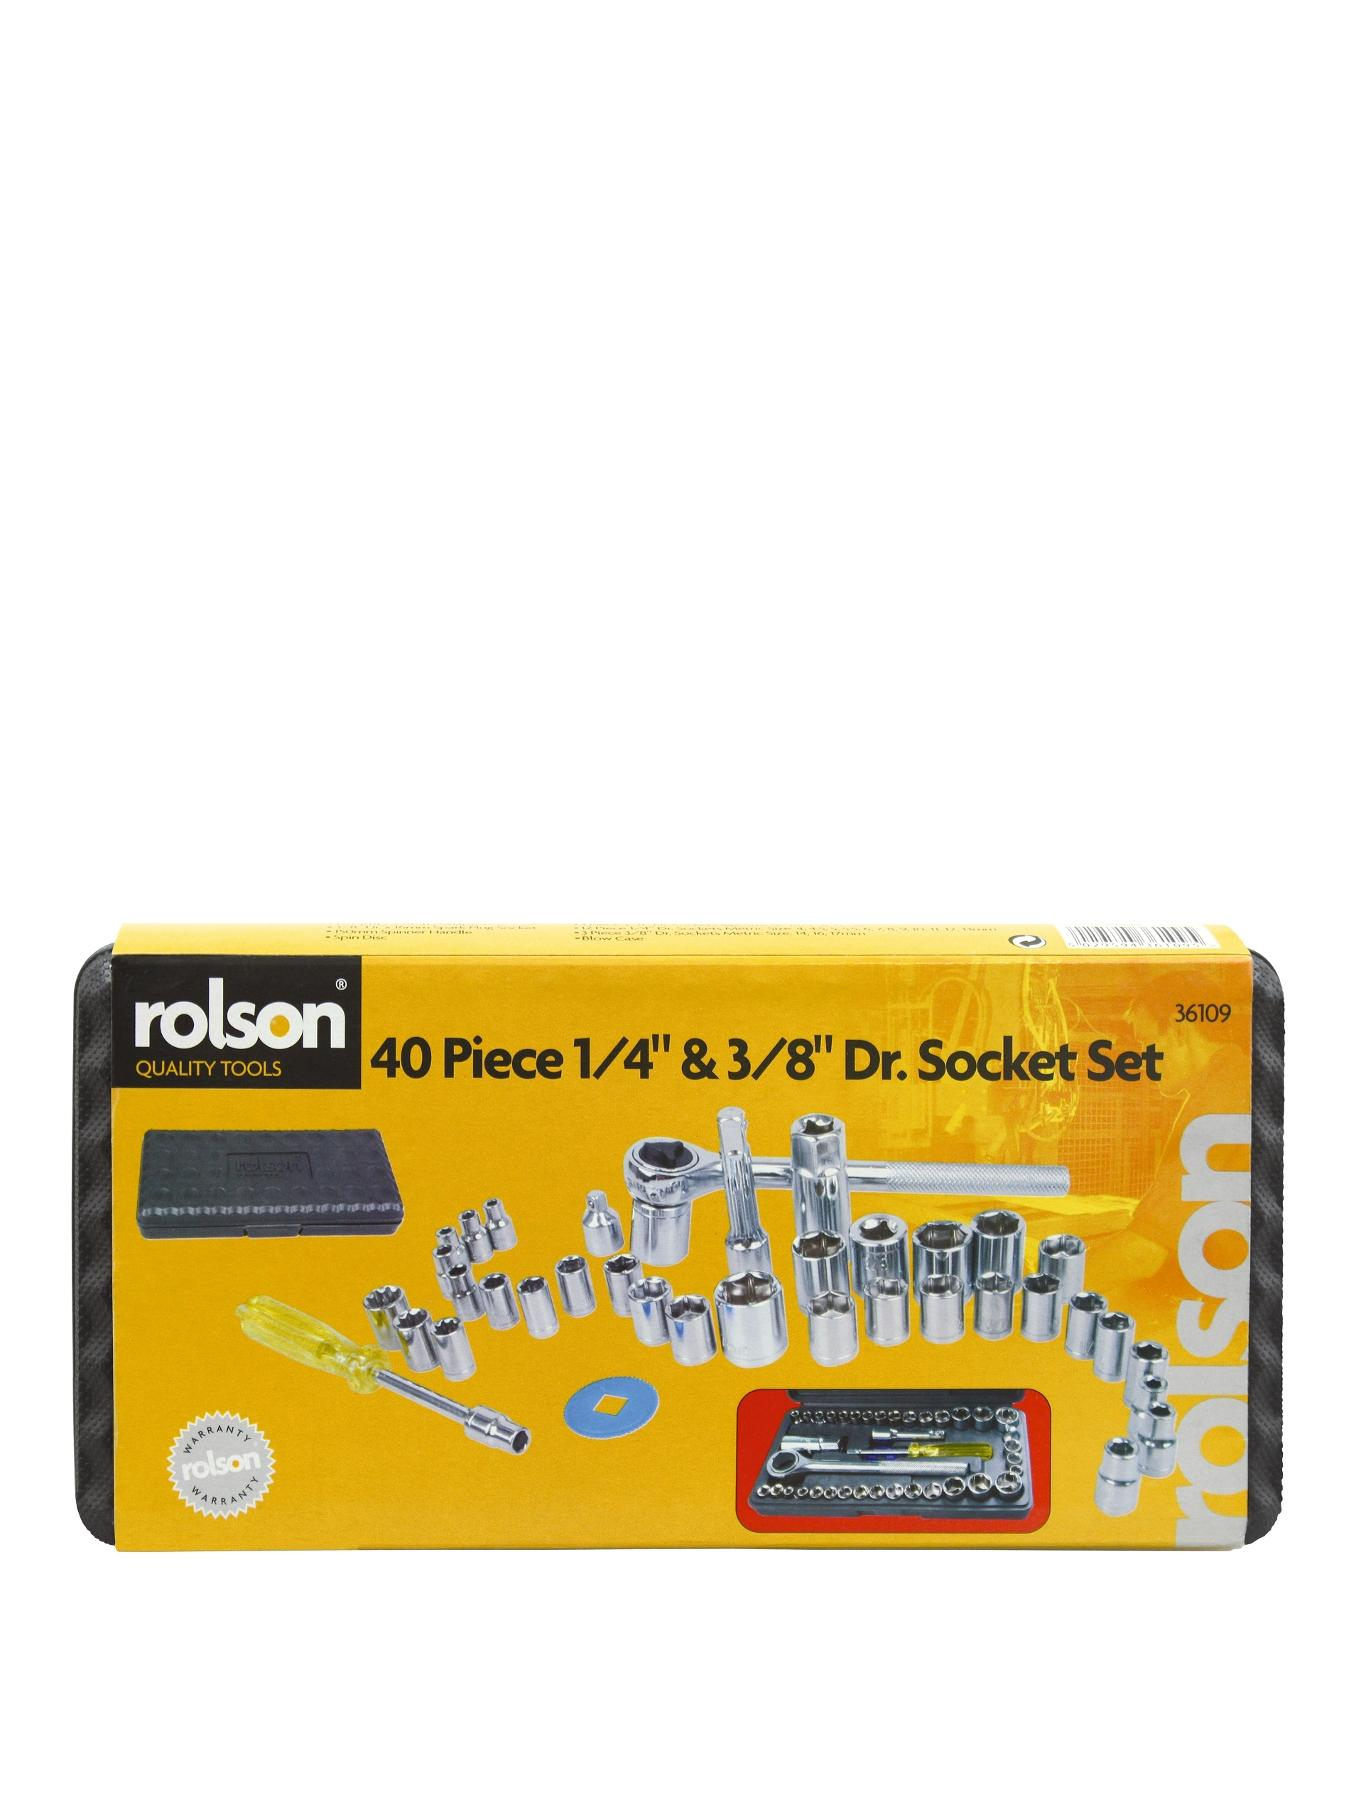 Rolson Dr Socket Set 1/4 inch and 3/8 inch (40-piece)